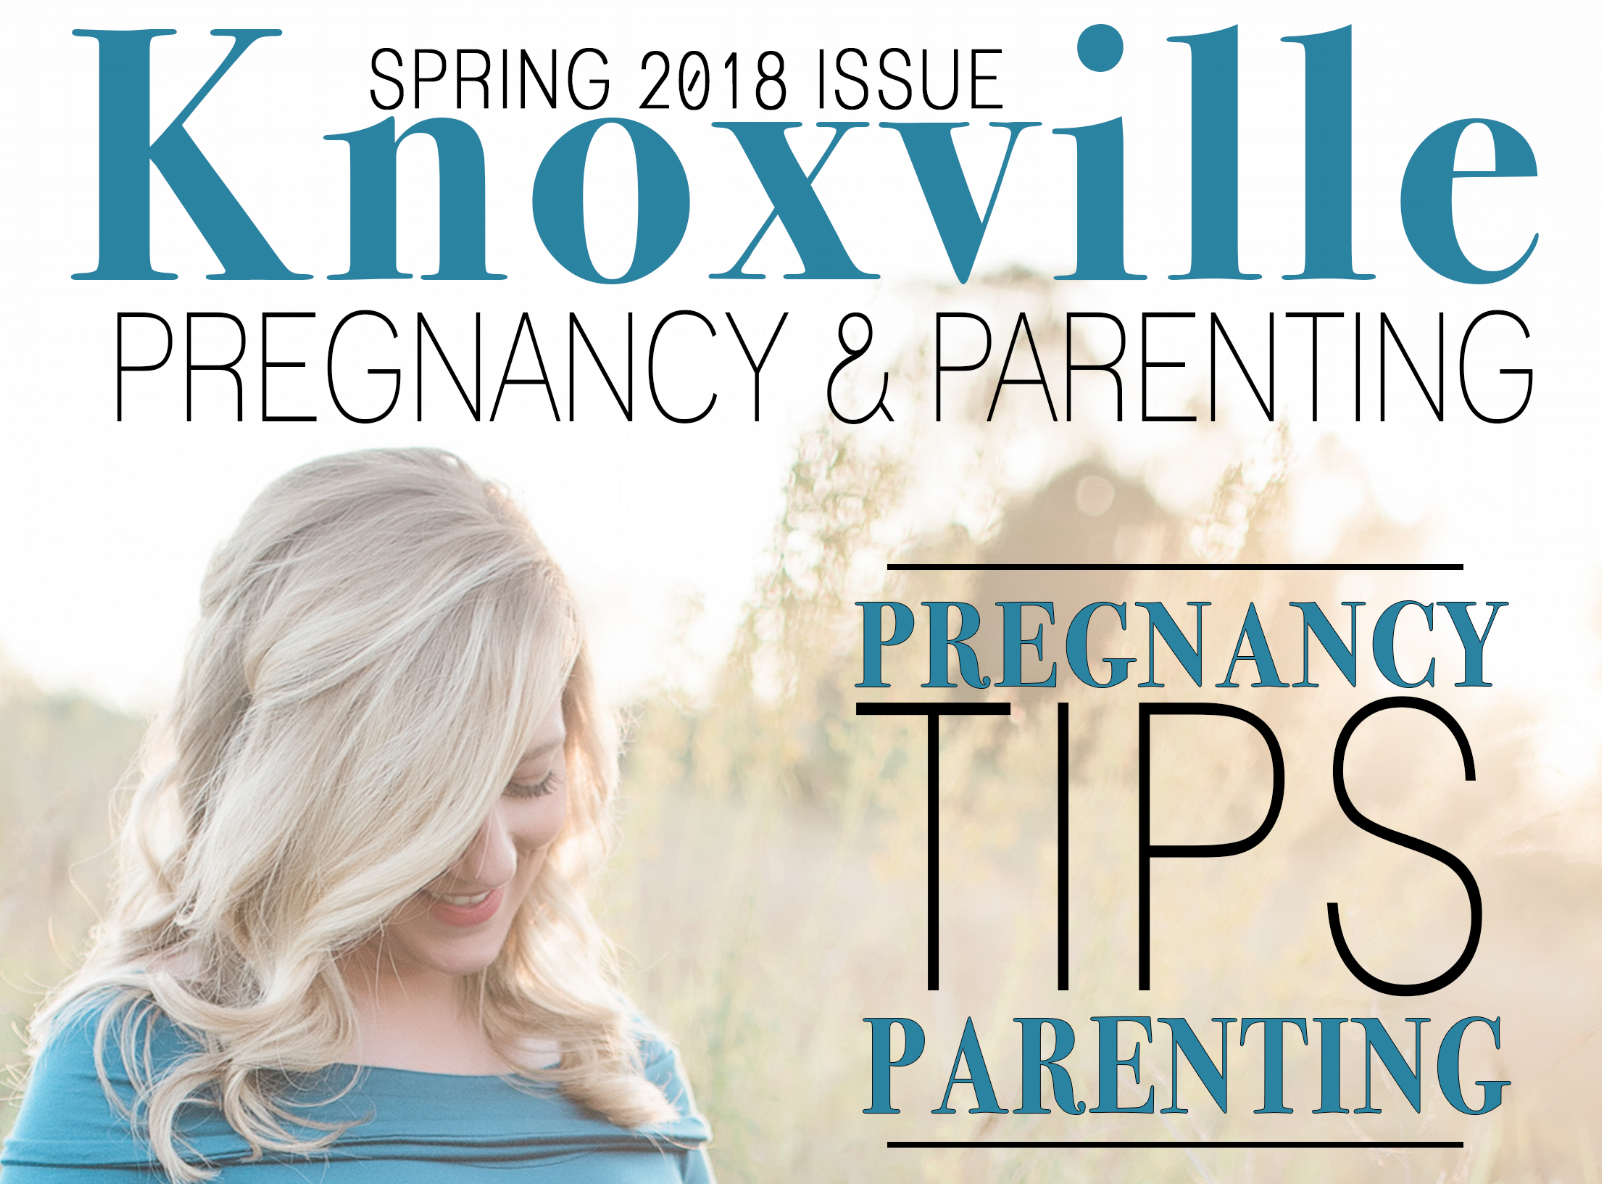 Knoxville Pregnancy & Parenting Magazine - Spring 2018